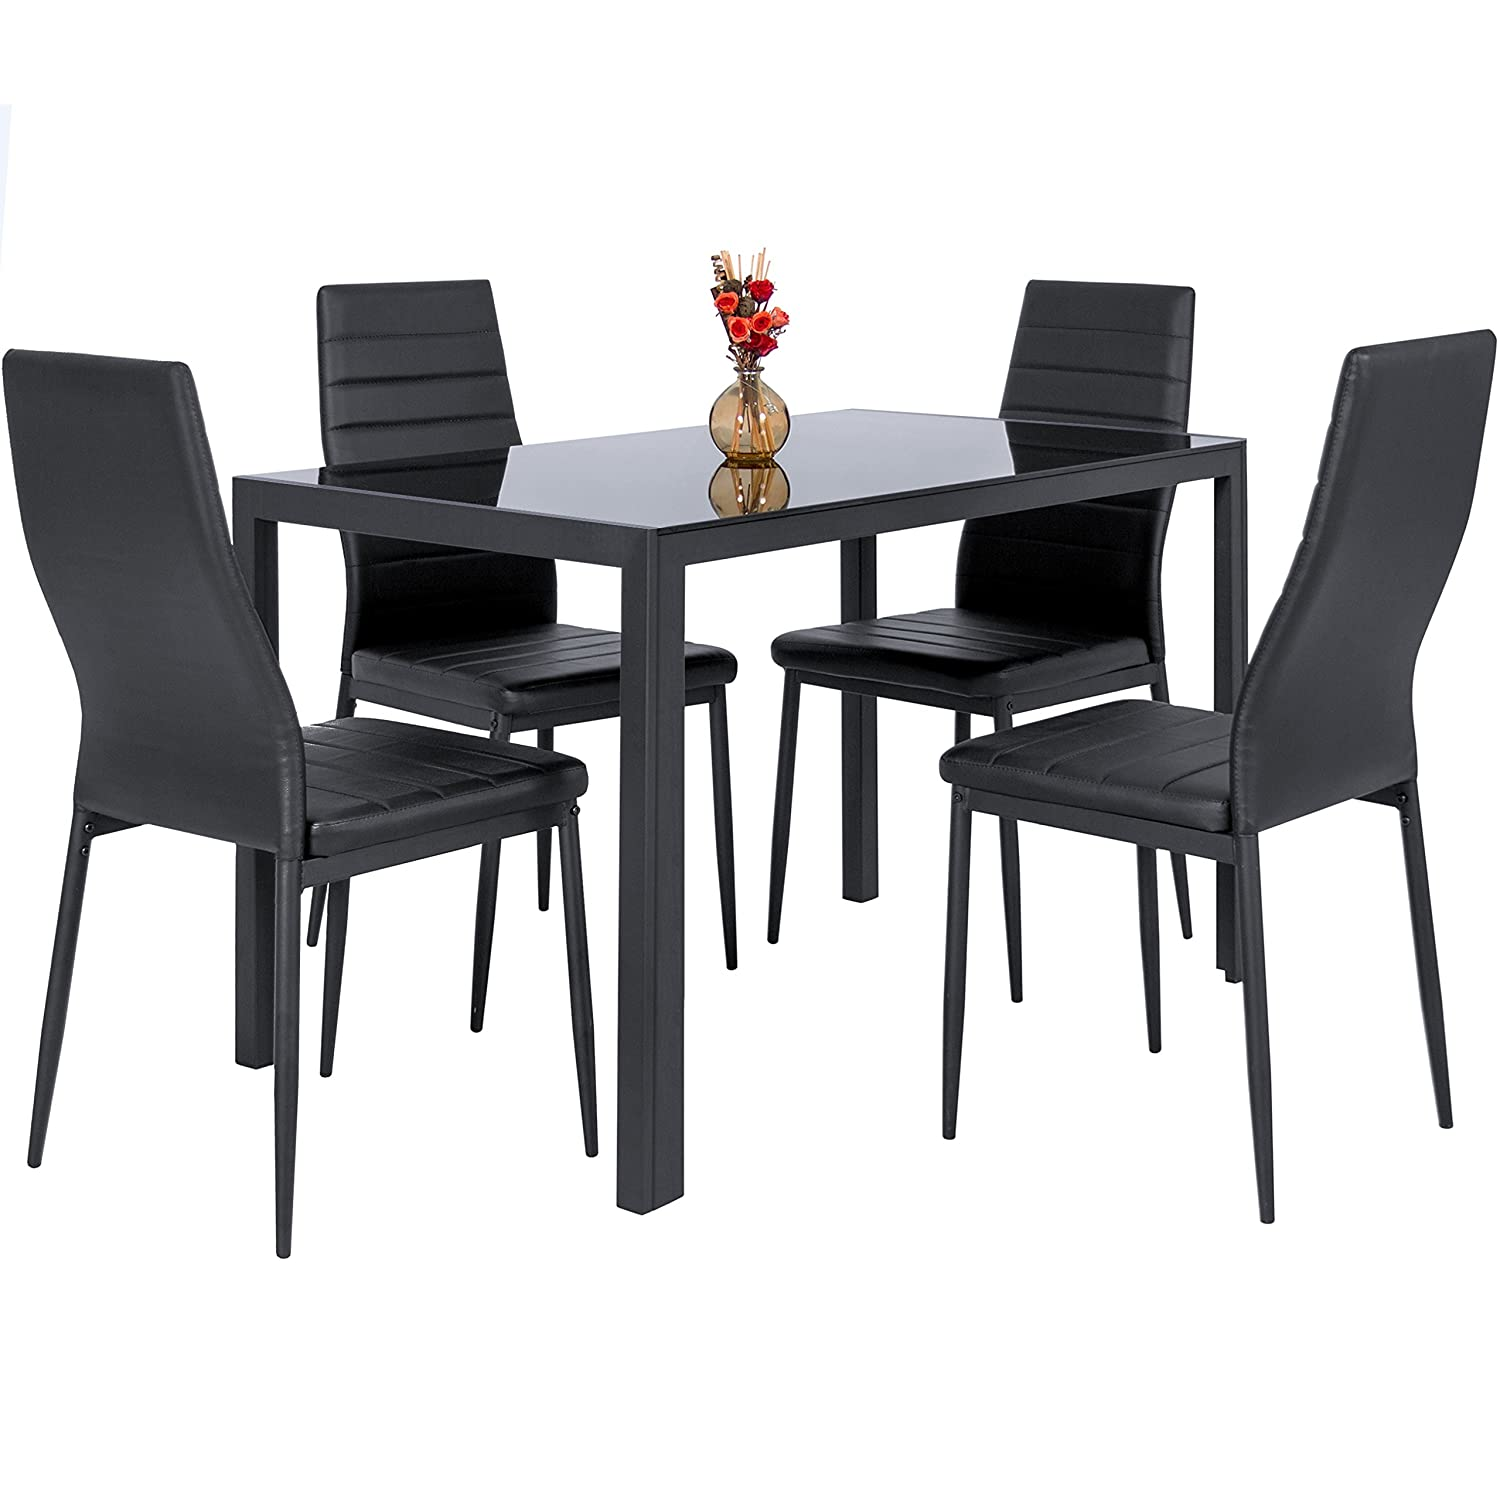 Kitchen Table Sets Under 300 Amazoncom Table Chair Sets Home Kitchen